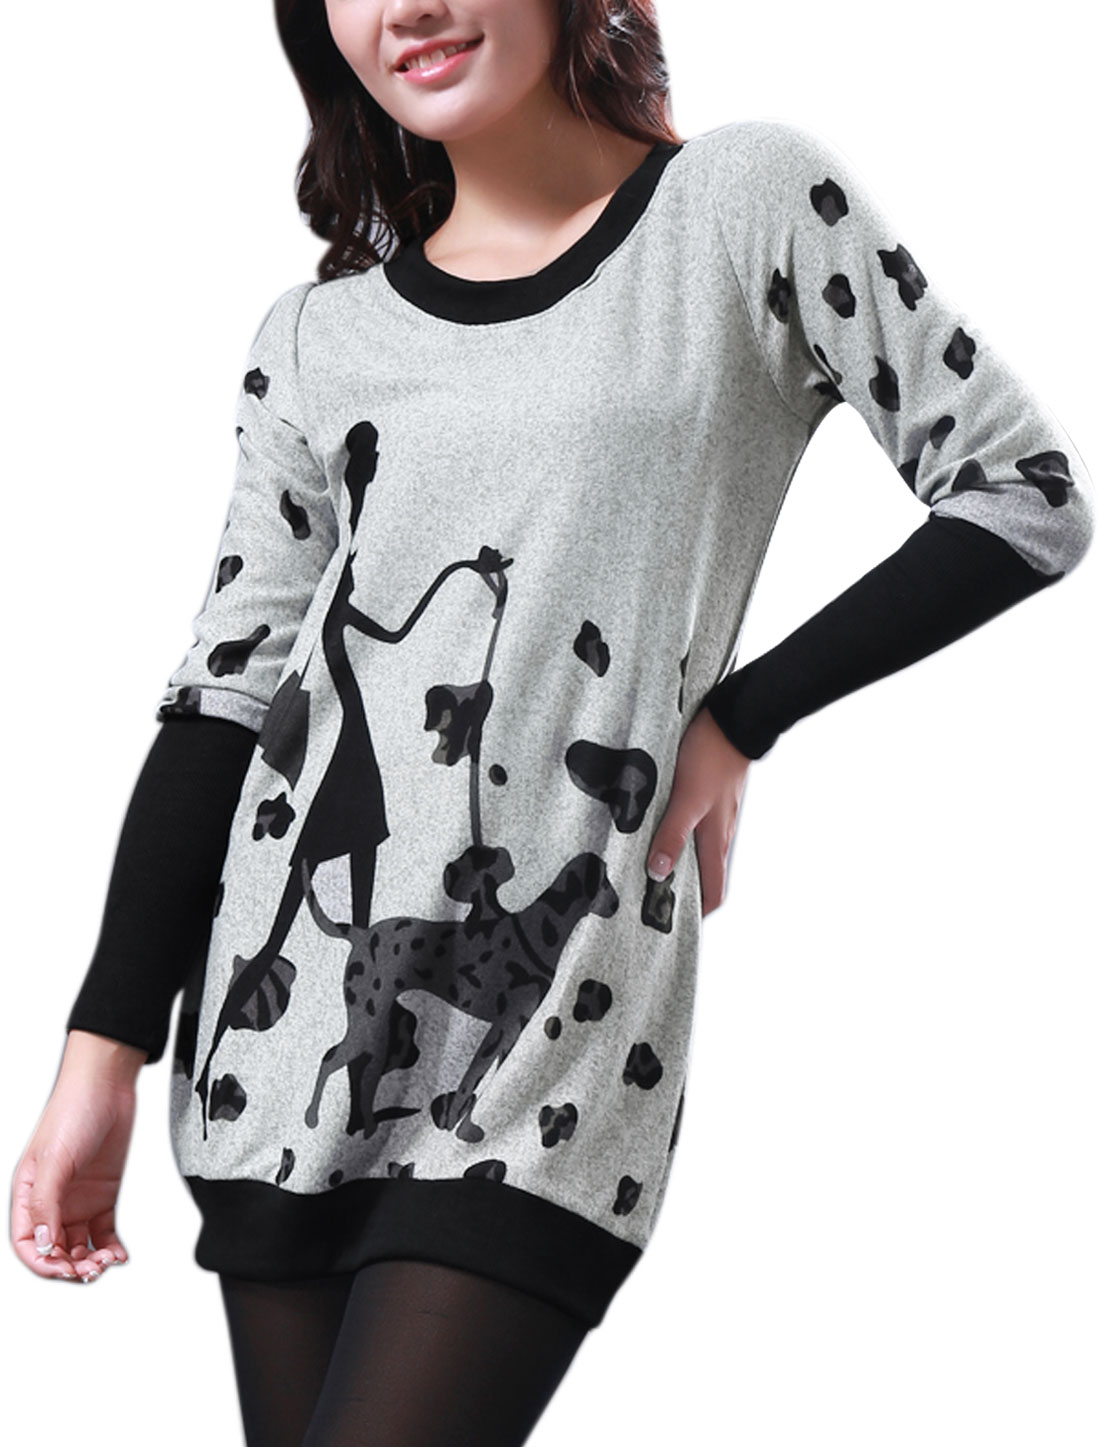 Ladies Chic Round Neck Splcie Long Sleeve Black Light Gray Knitted Top XS